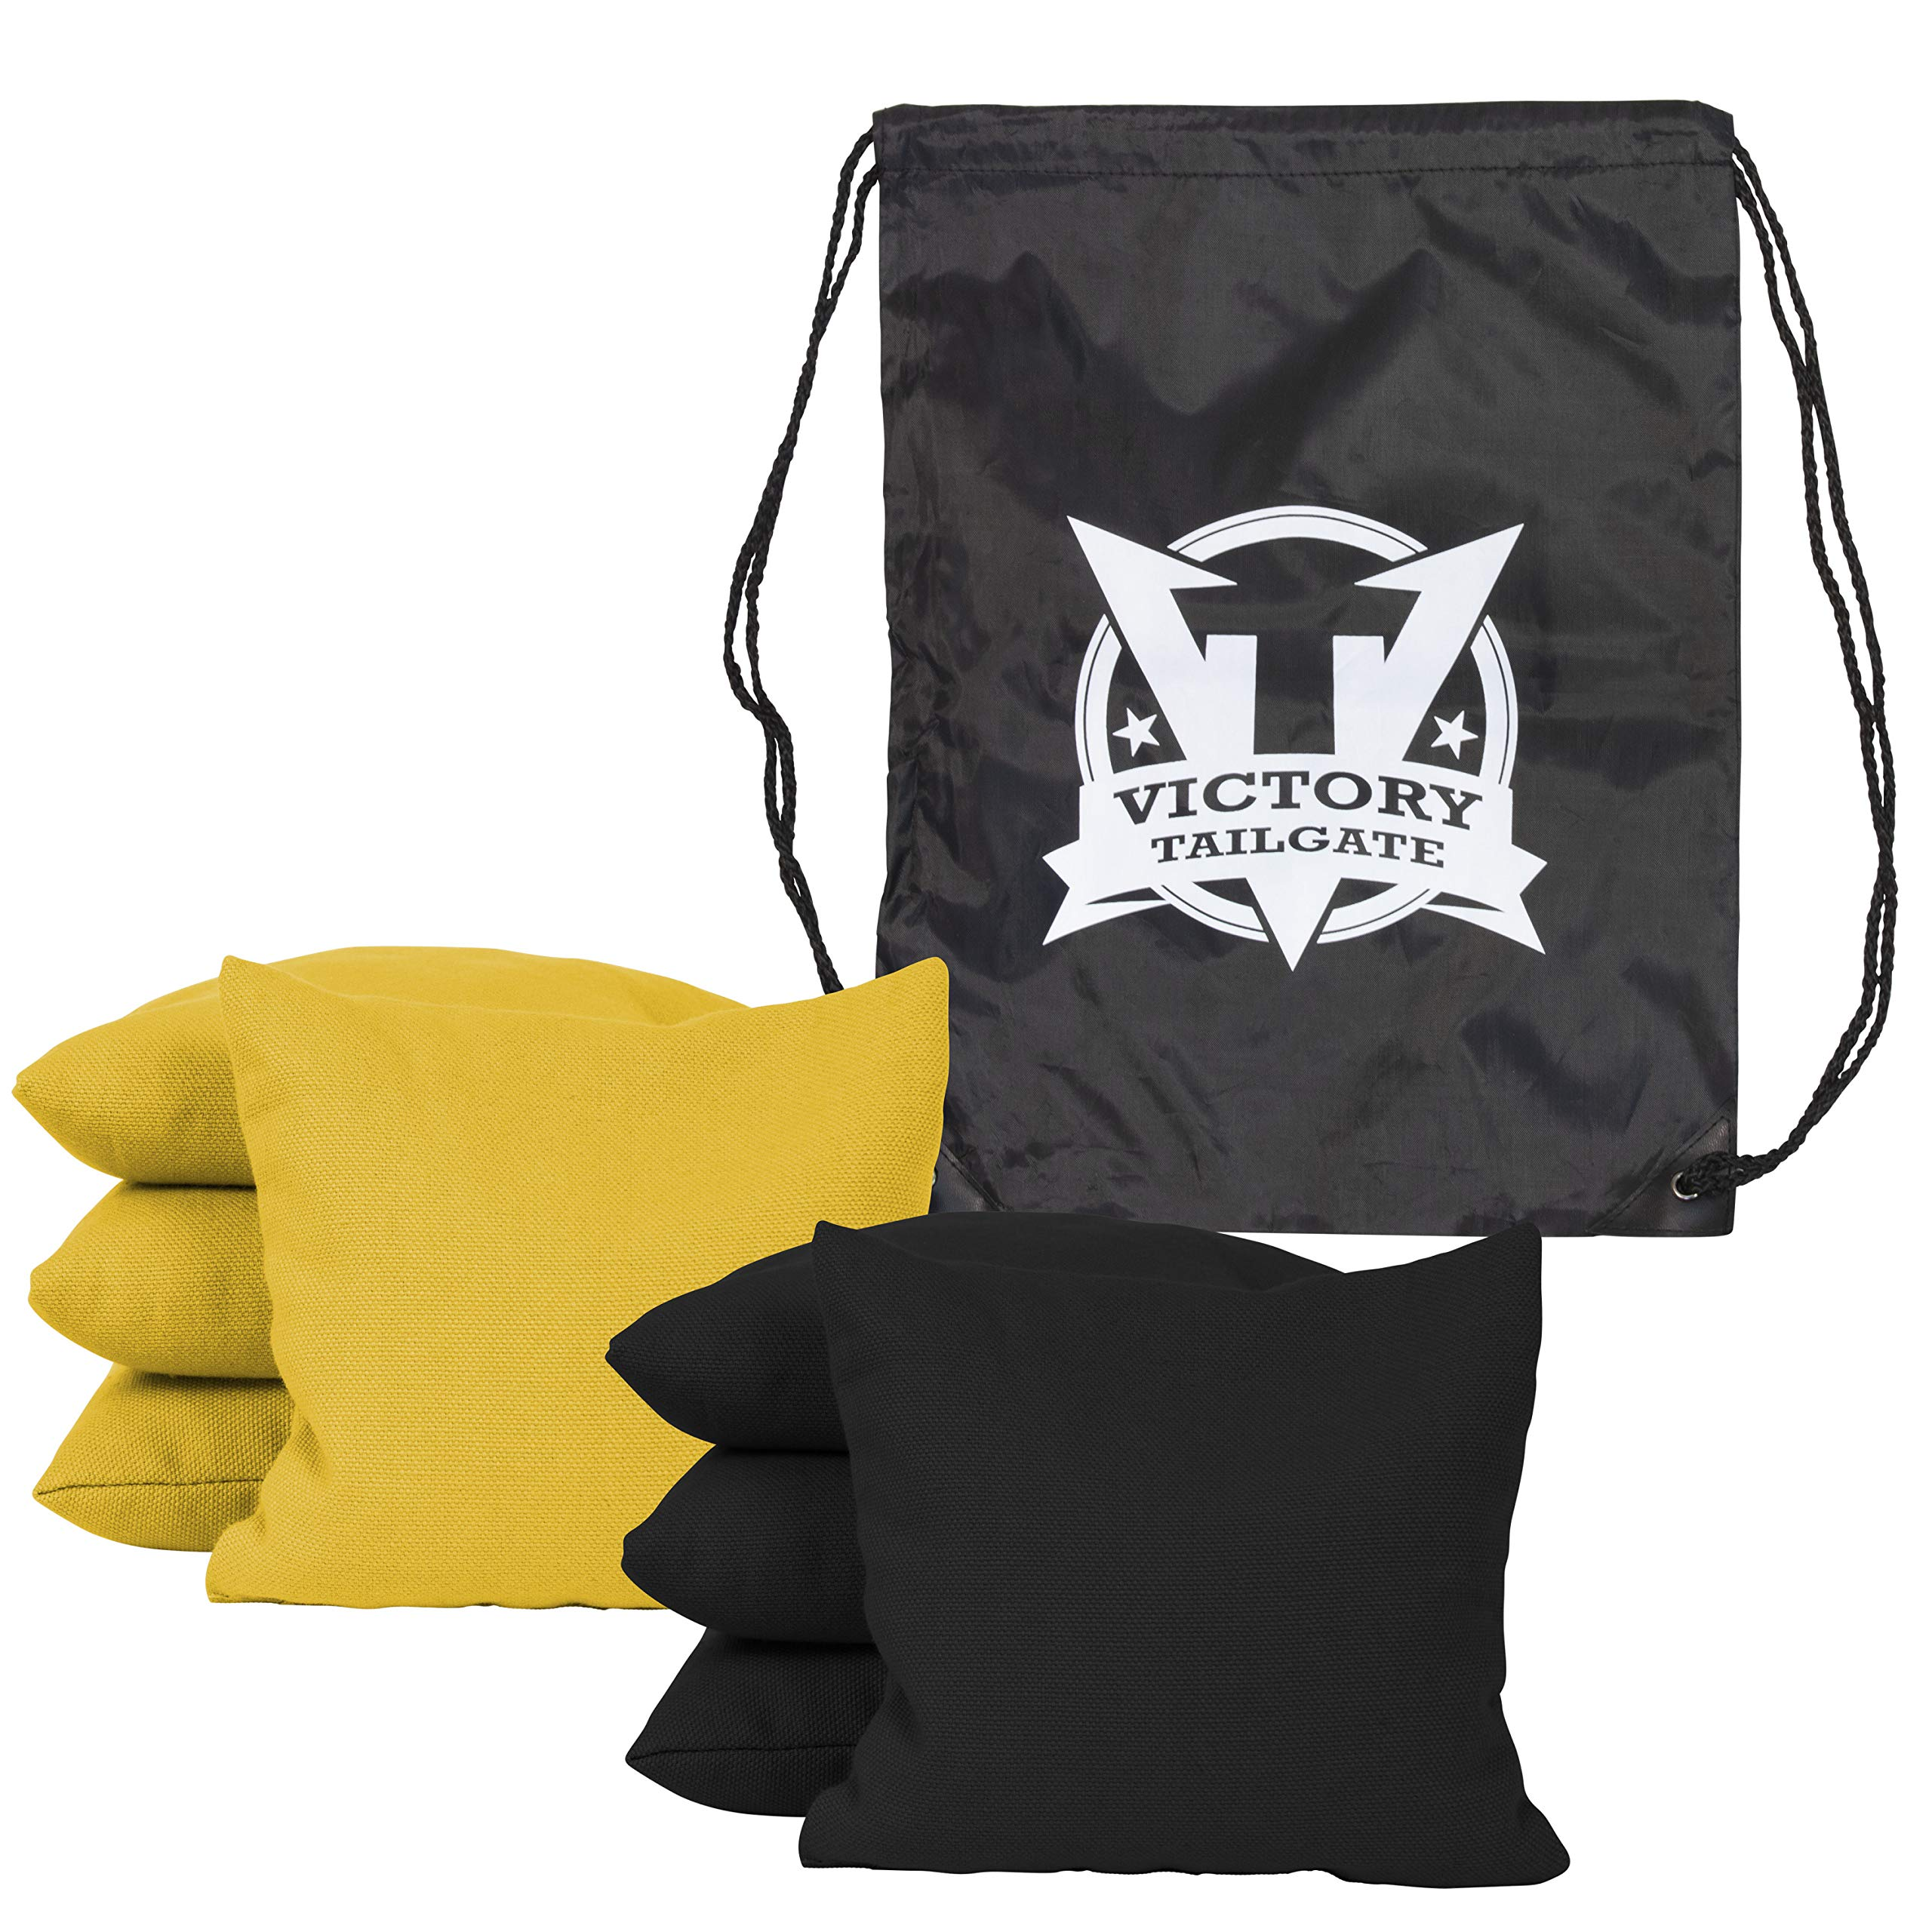 Victory Tailgate 8 Colored Corn Filled Regulation Cornhole Bags with Drawstring Pack (4 Black, 4 Yellow)